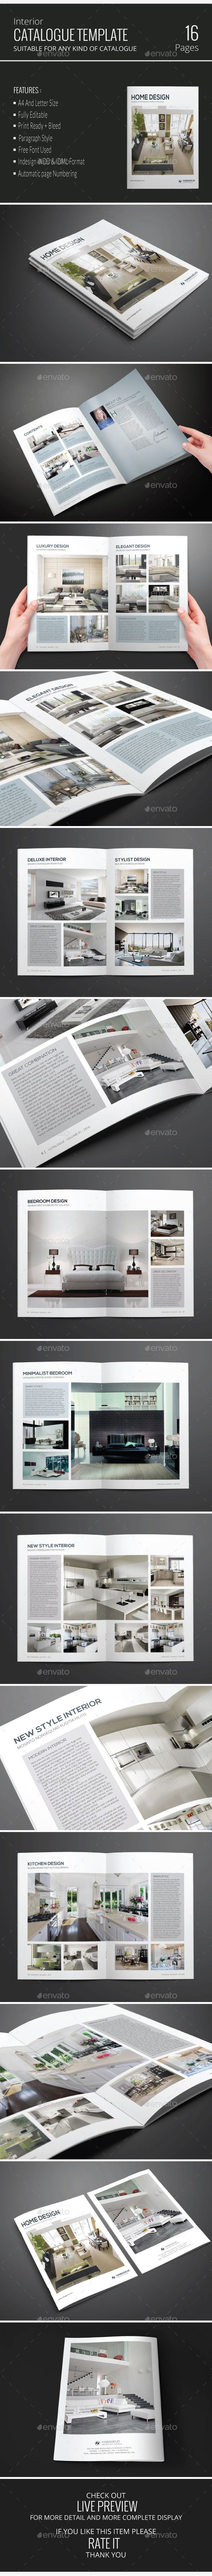 Catalog Template Vol. 03   http://graphicriver.net/item/catalog-template-vol-03/8954550?WT.ac=portfolio&WT.z_author=habageud